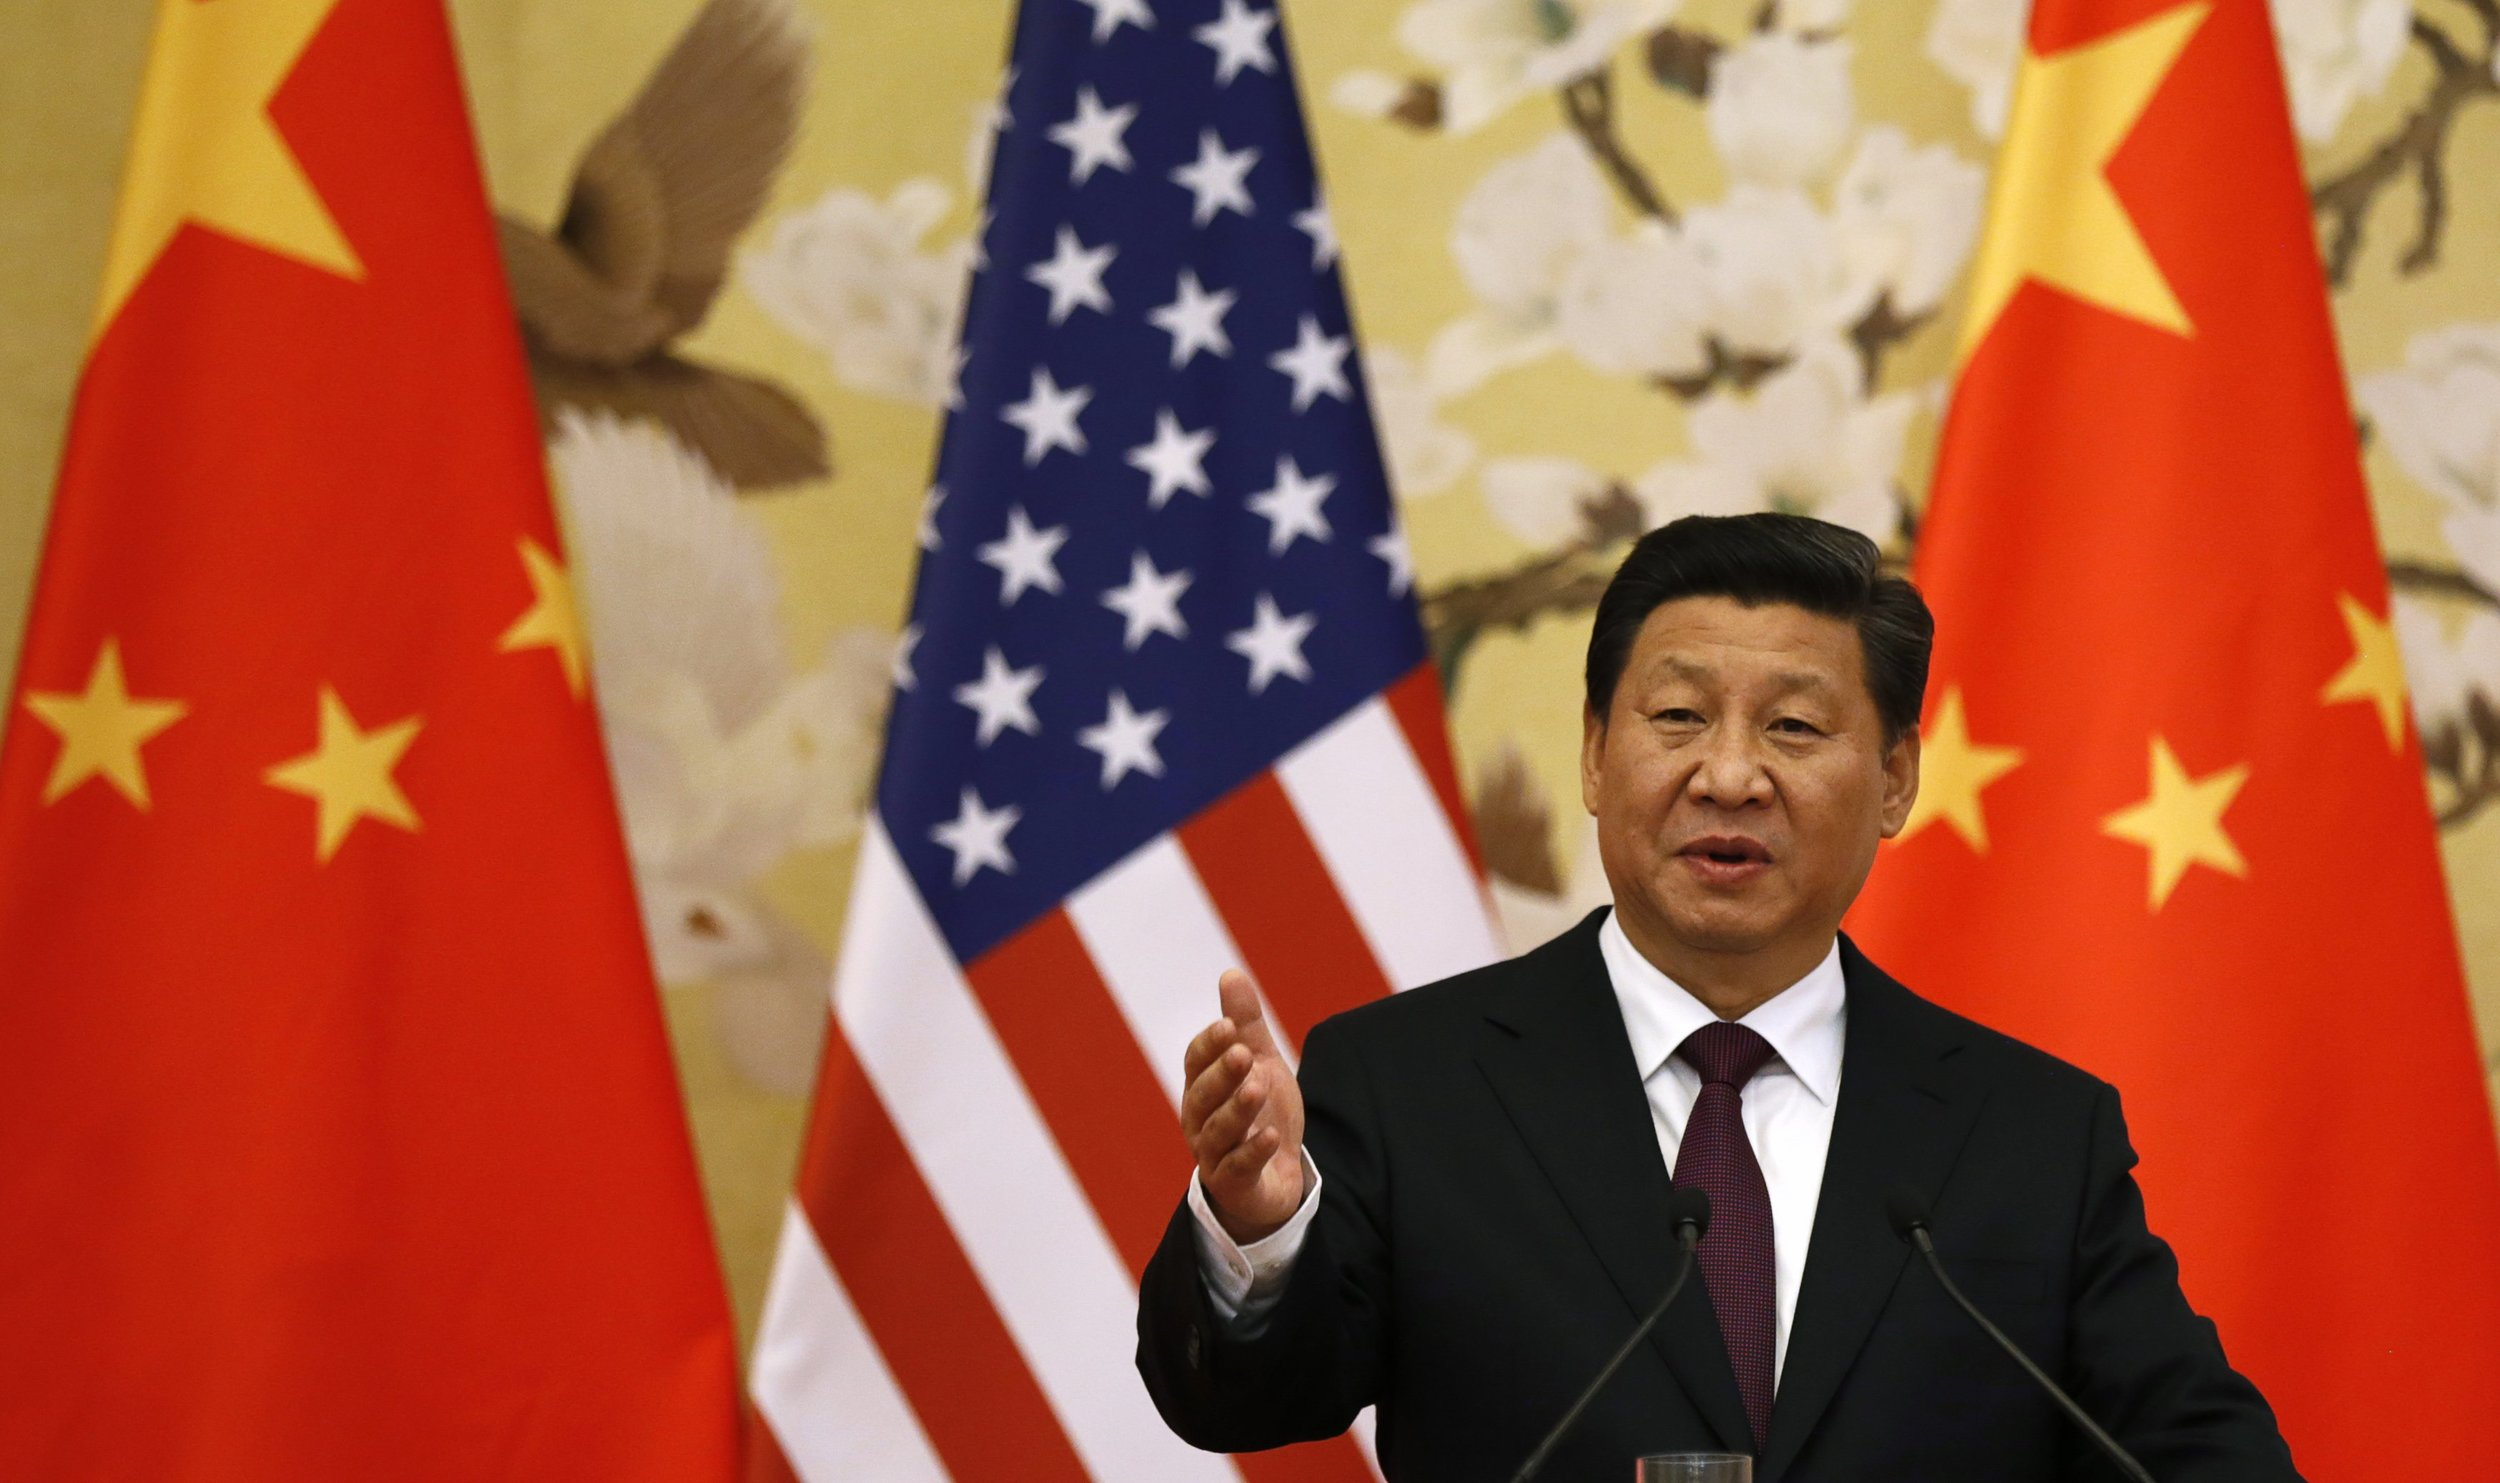 Chinese President Xi Jinping speaks during a news conference in the Great Hall of the People in Beijing November 12, 2014. (Kevin Lamarque/Reuters)